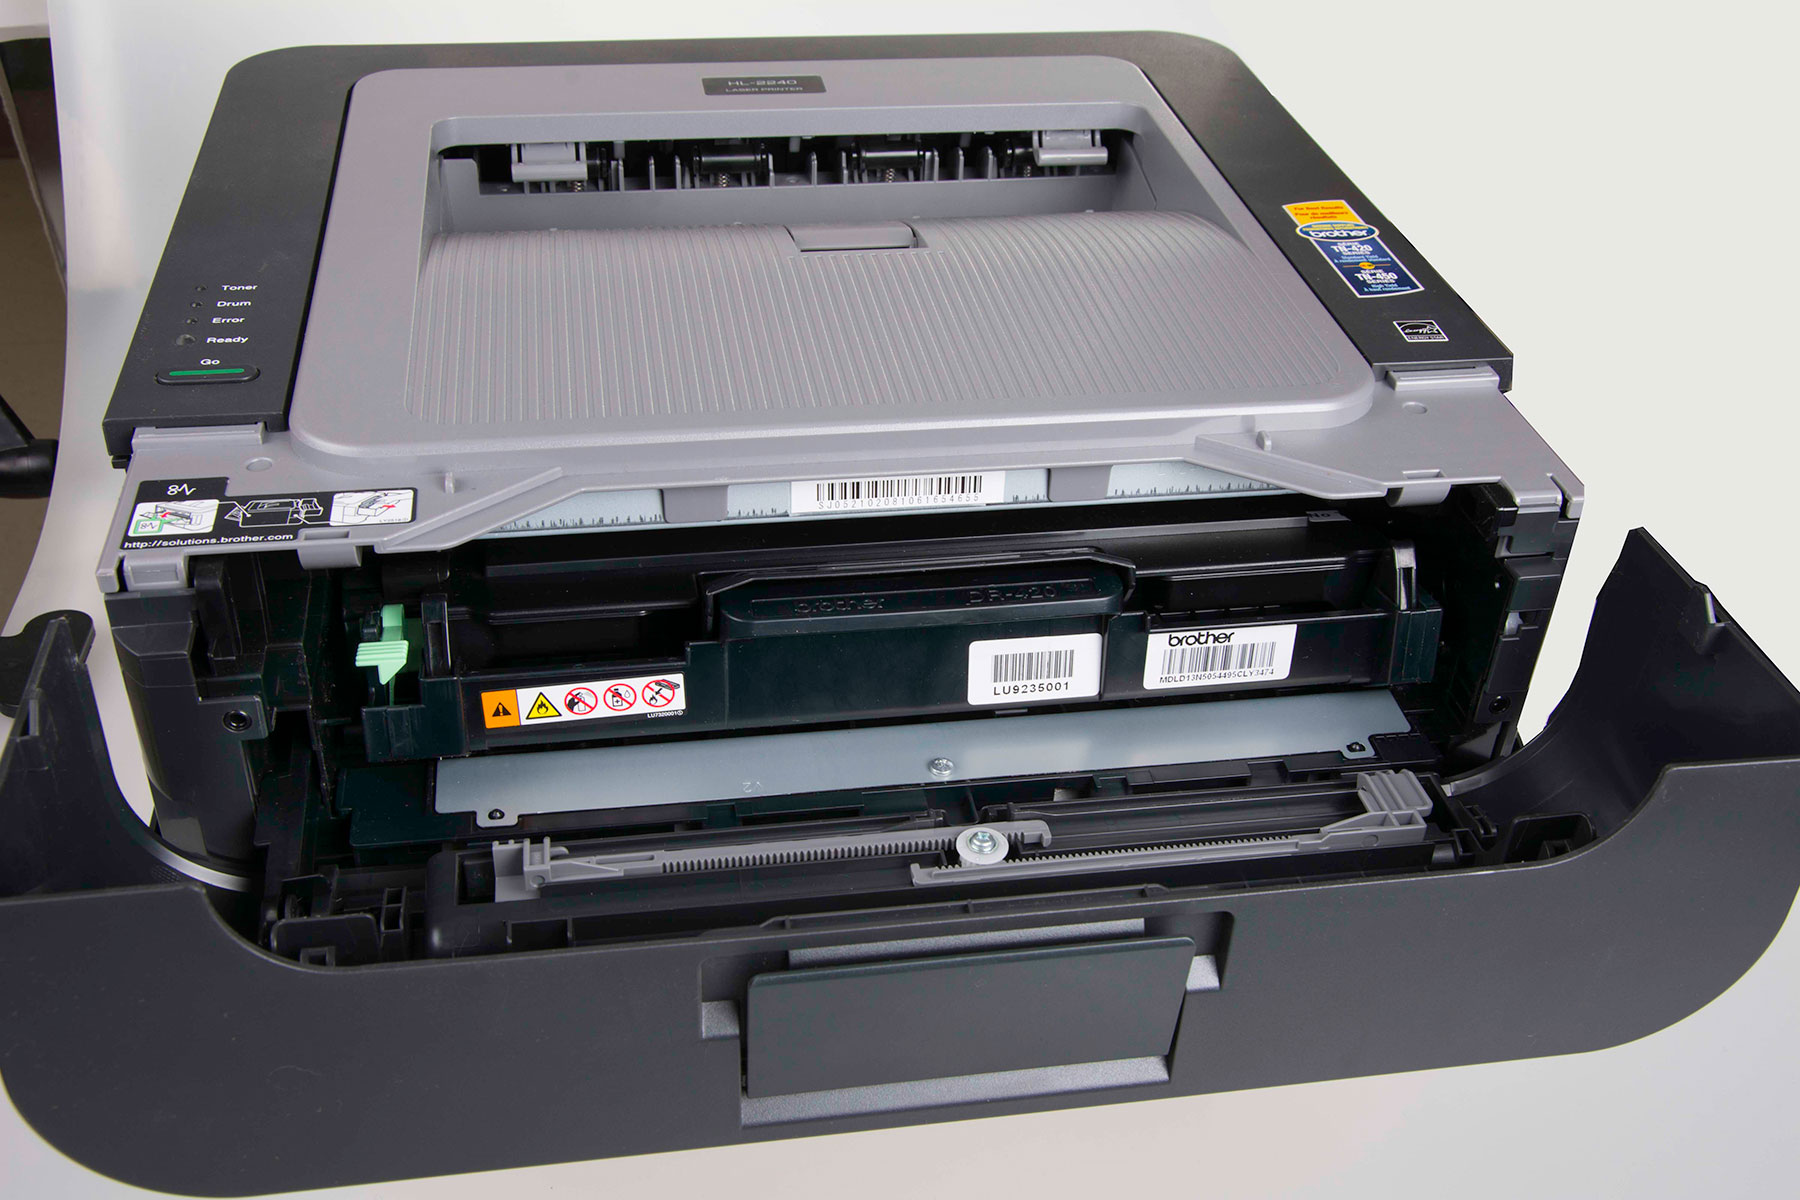 Compatible TN-450 fits in the drum and printer with no problem